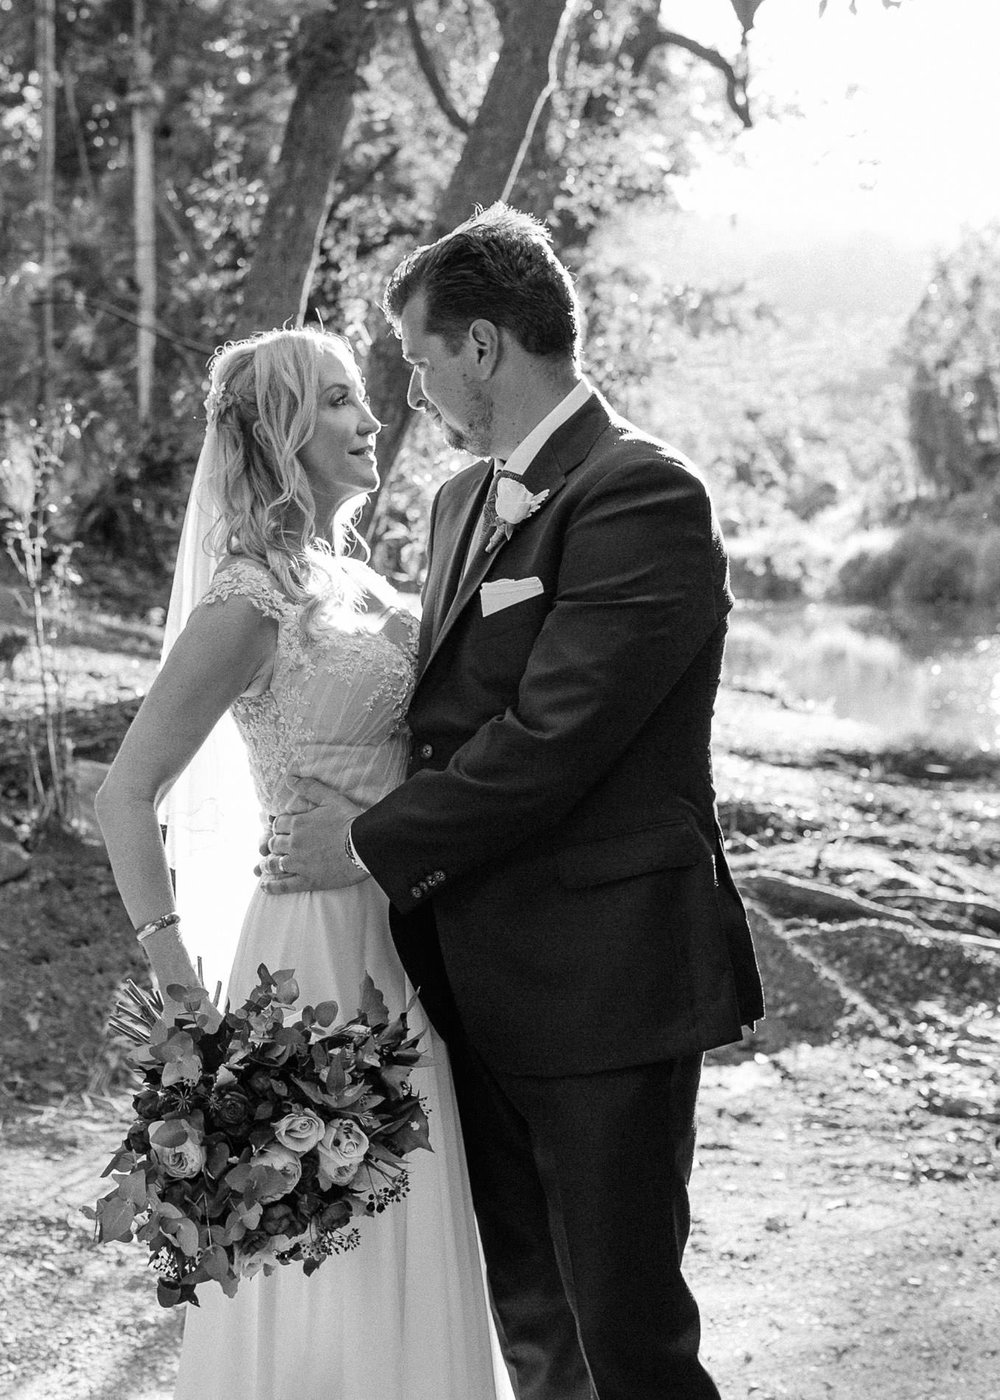 True North Photography_Boomerang Farm_Stacey and Isaac_Gold Coast Wedding_Barm Wedding_Hinterland Wedding-130.jpg